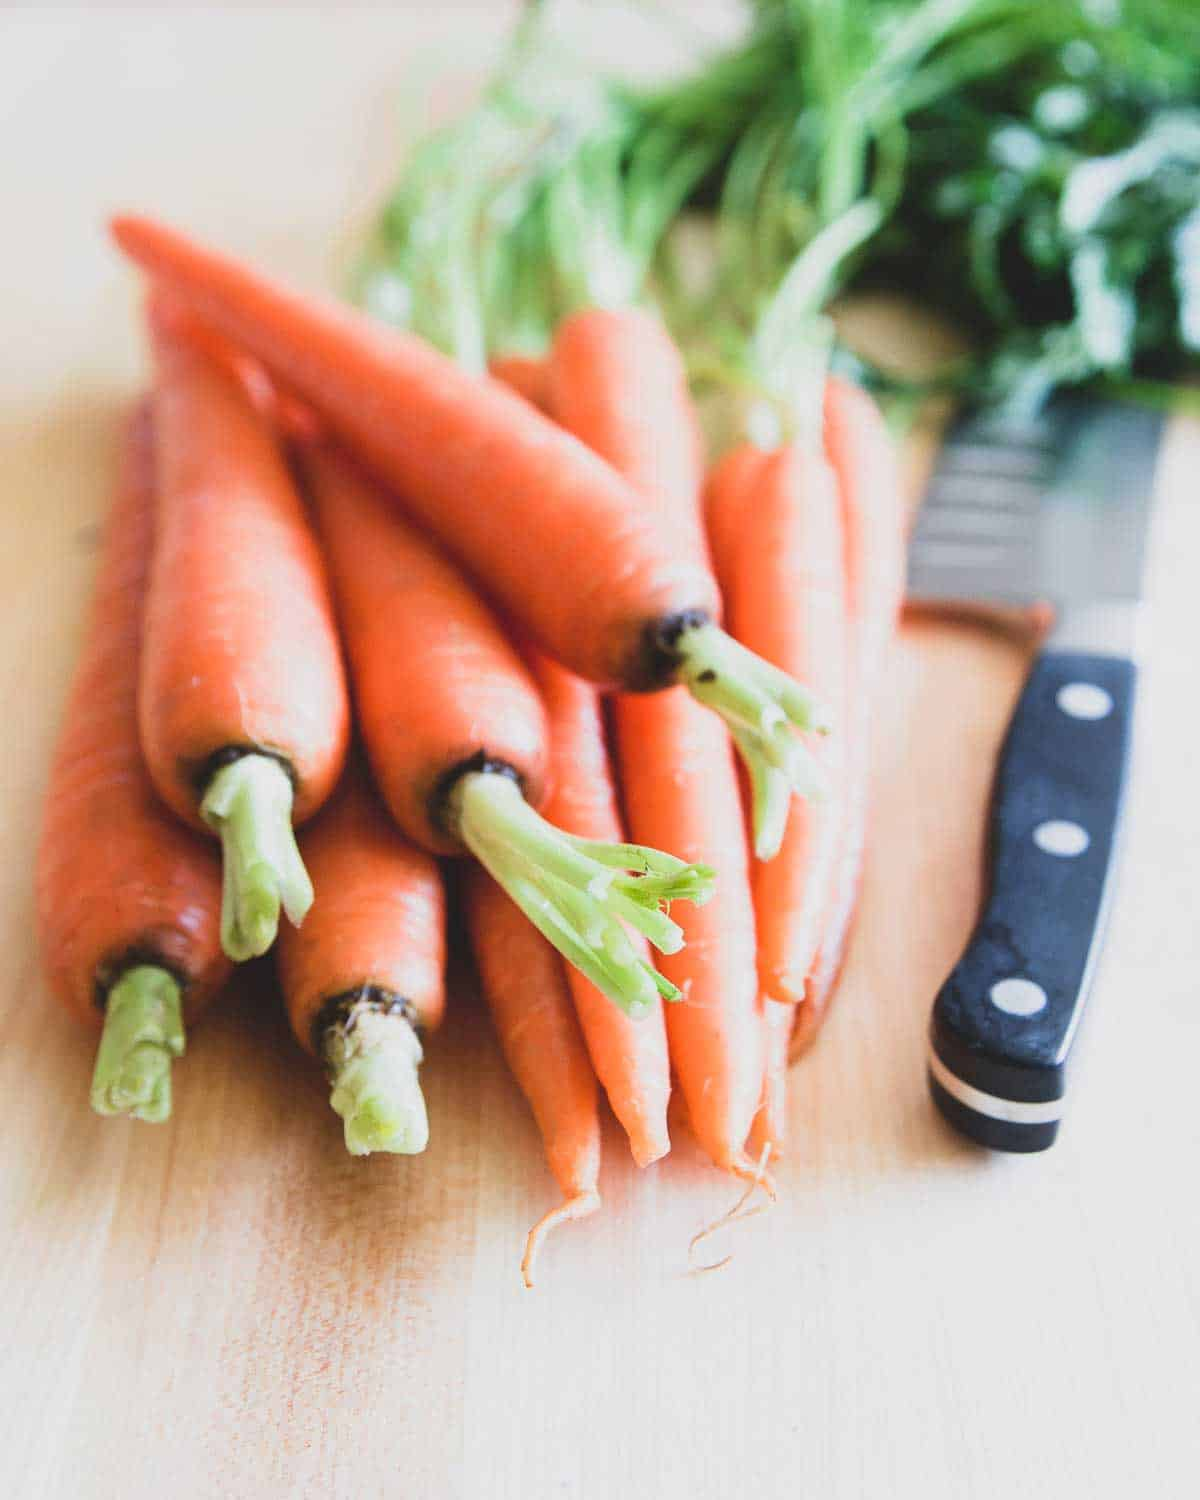 Tender spring carrots with greens become candied with brown sugar and butter on the stovetop.